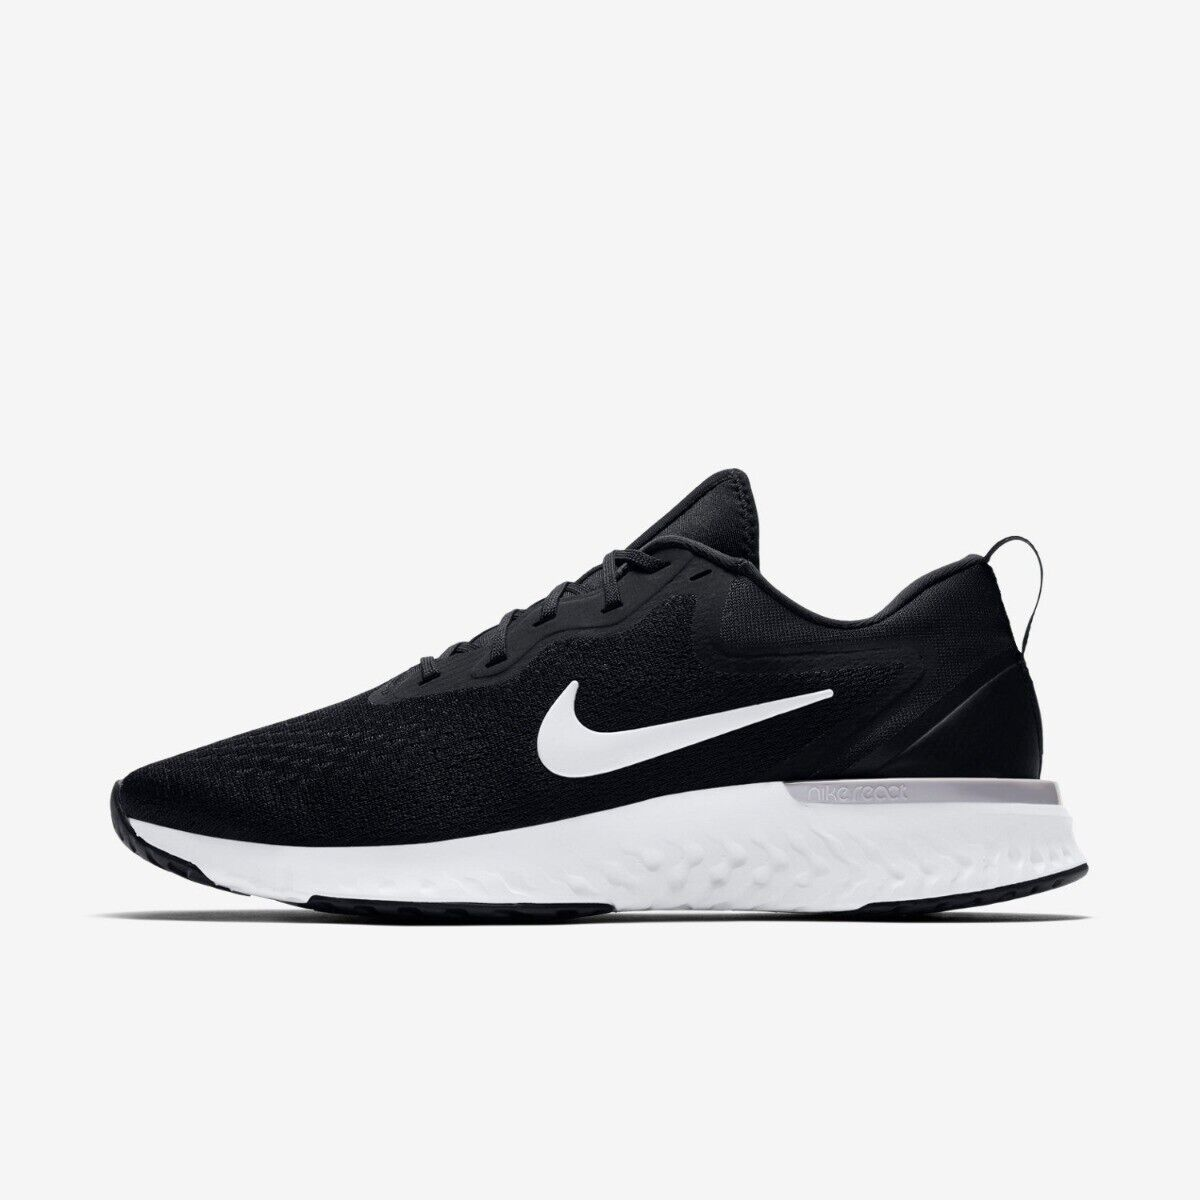 Nike Odyssey React Mens Running Trainer shoes Size 8 - 10.5 New Black RRP  -